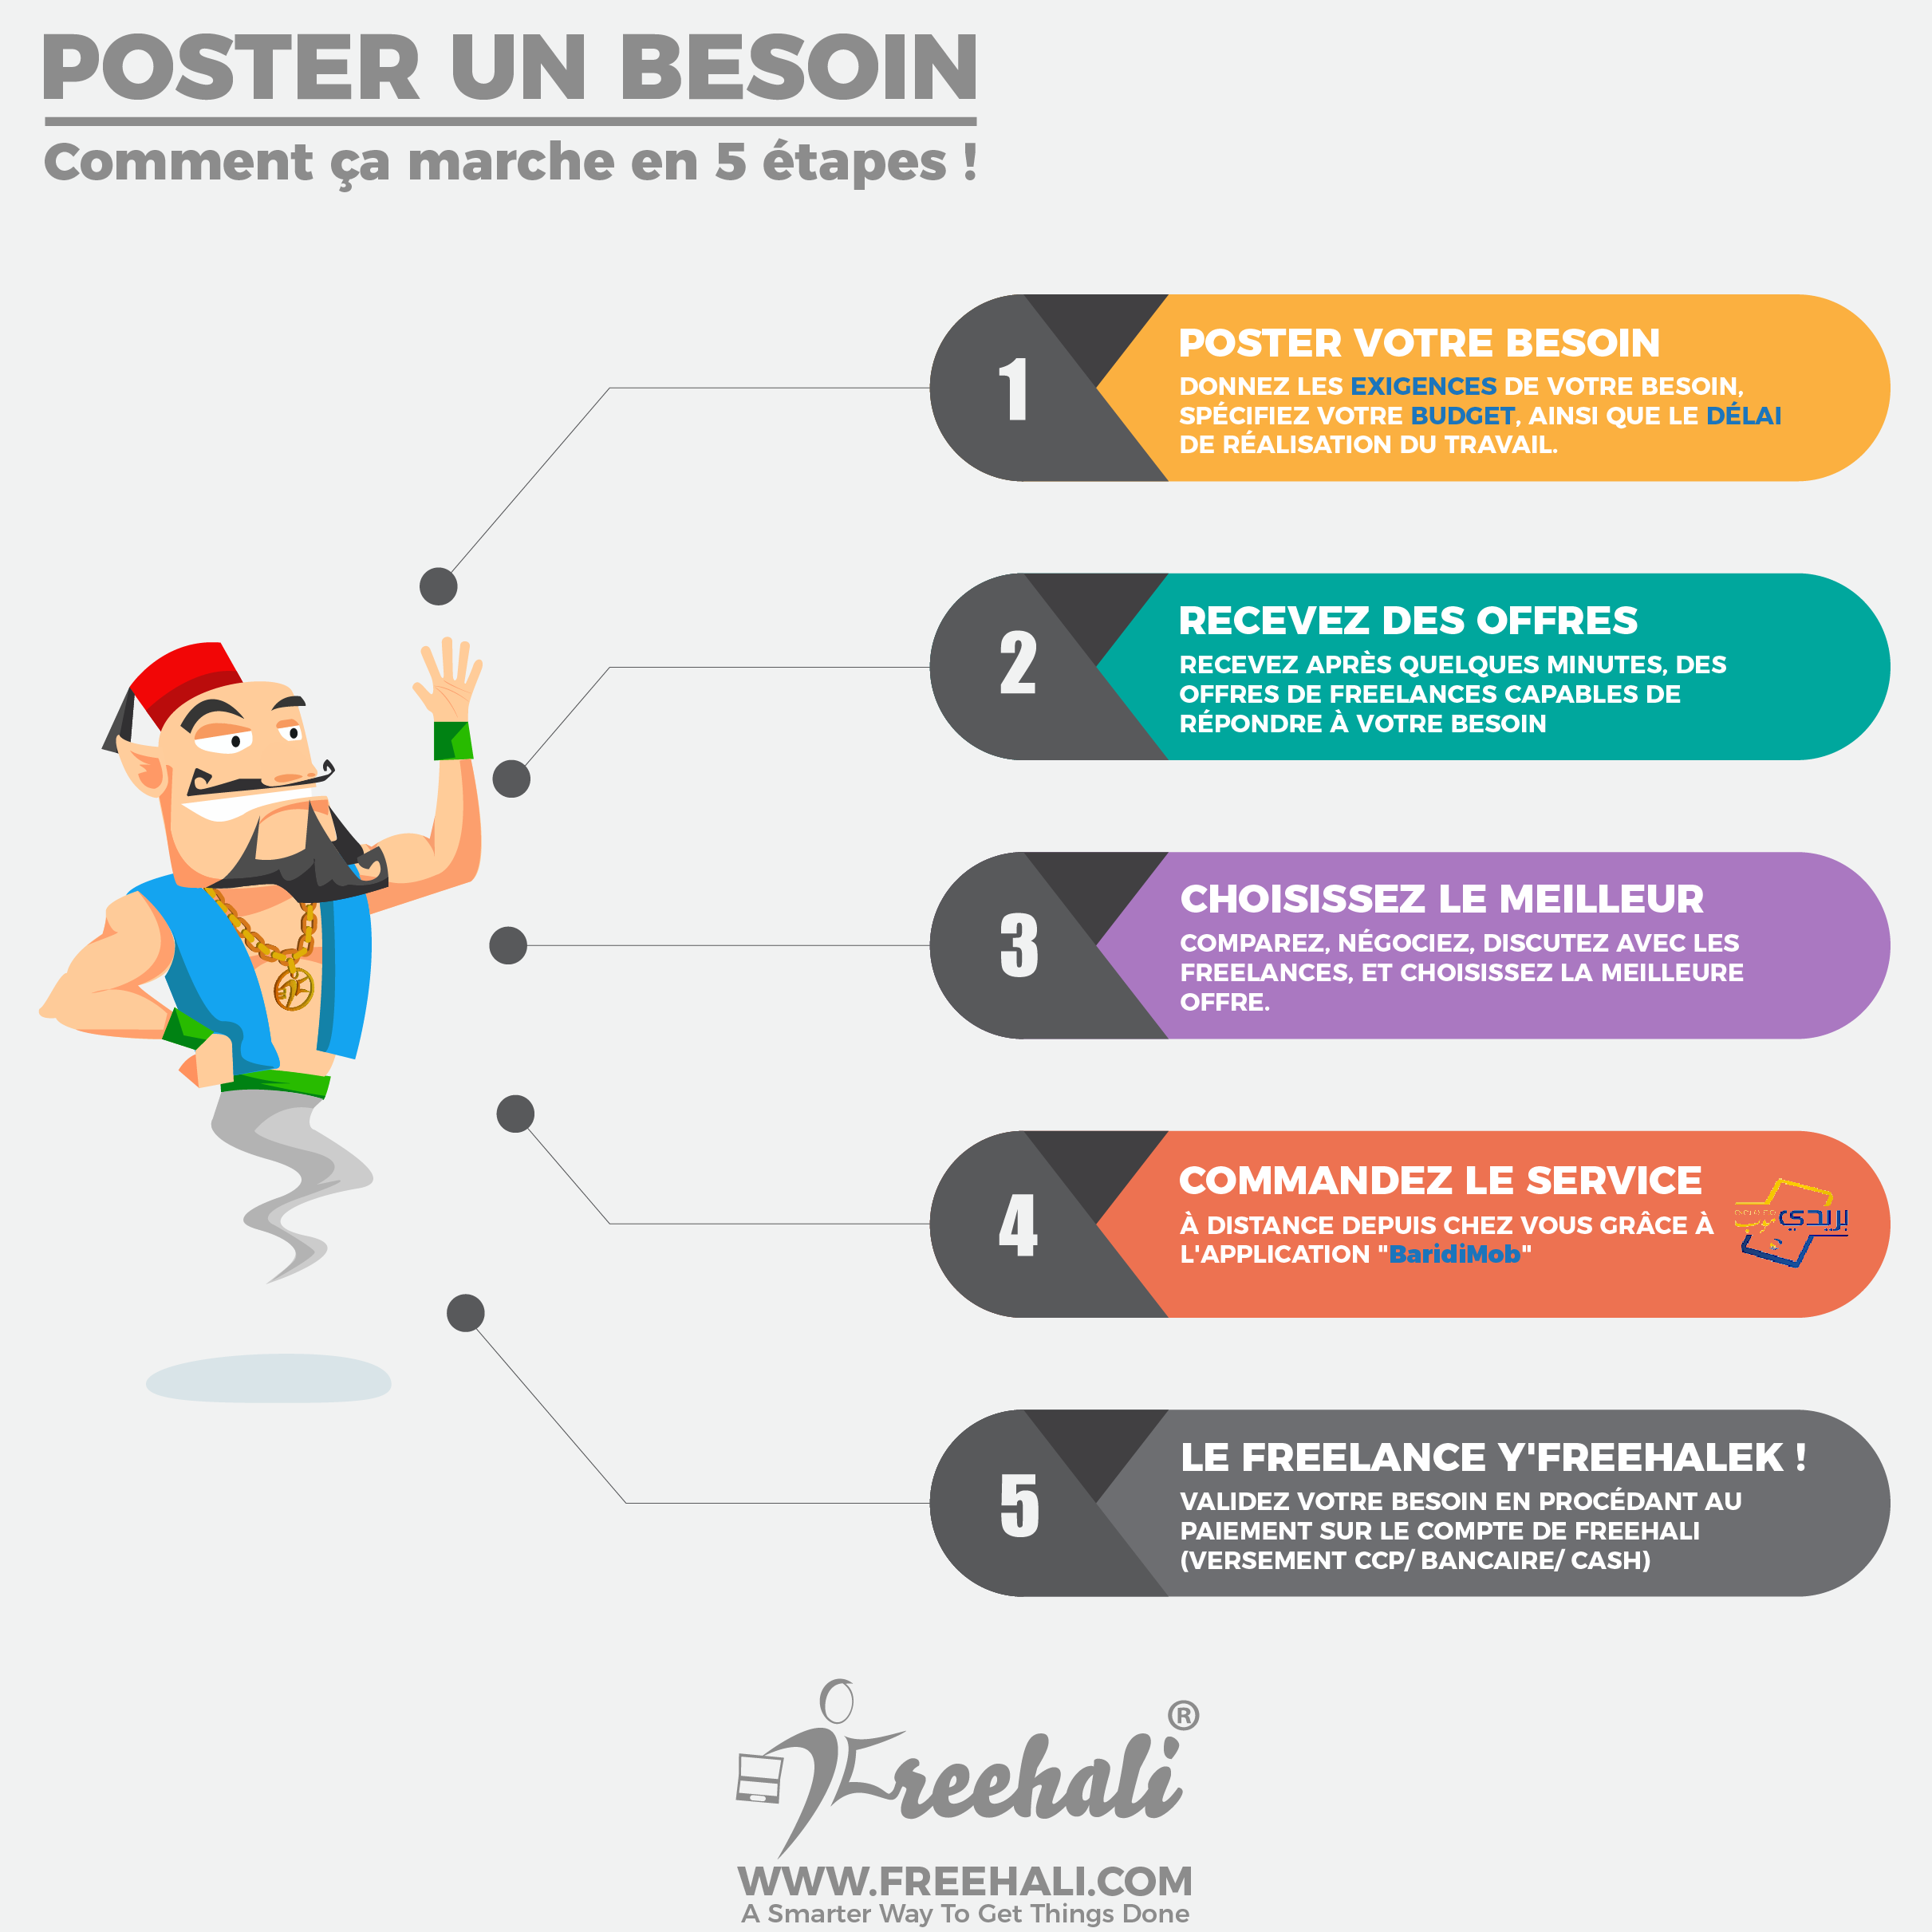 Poster Besoin